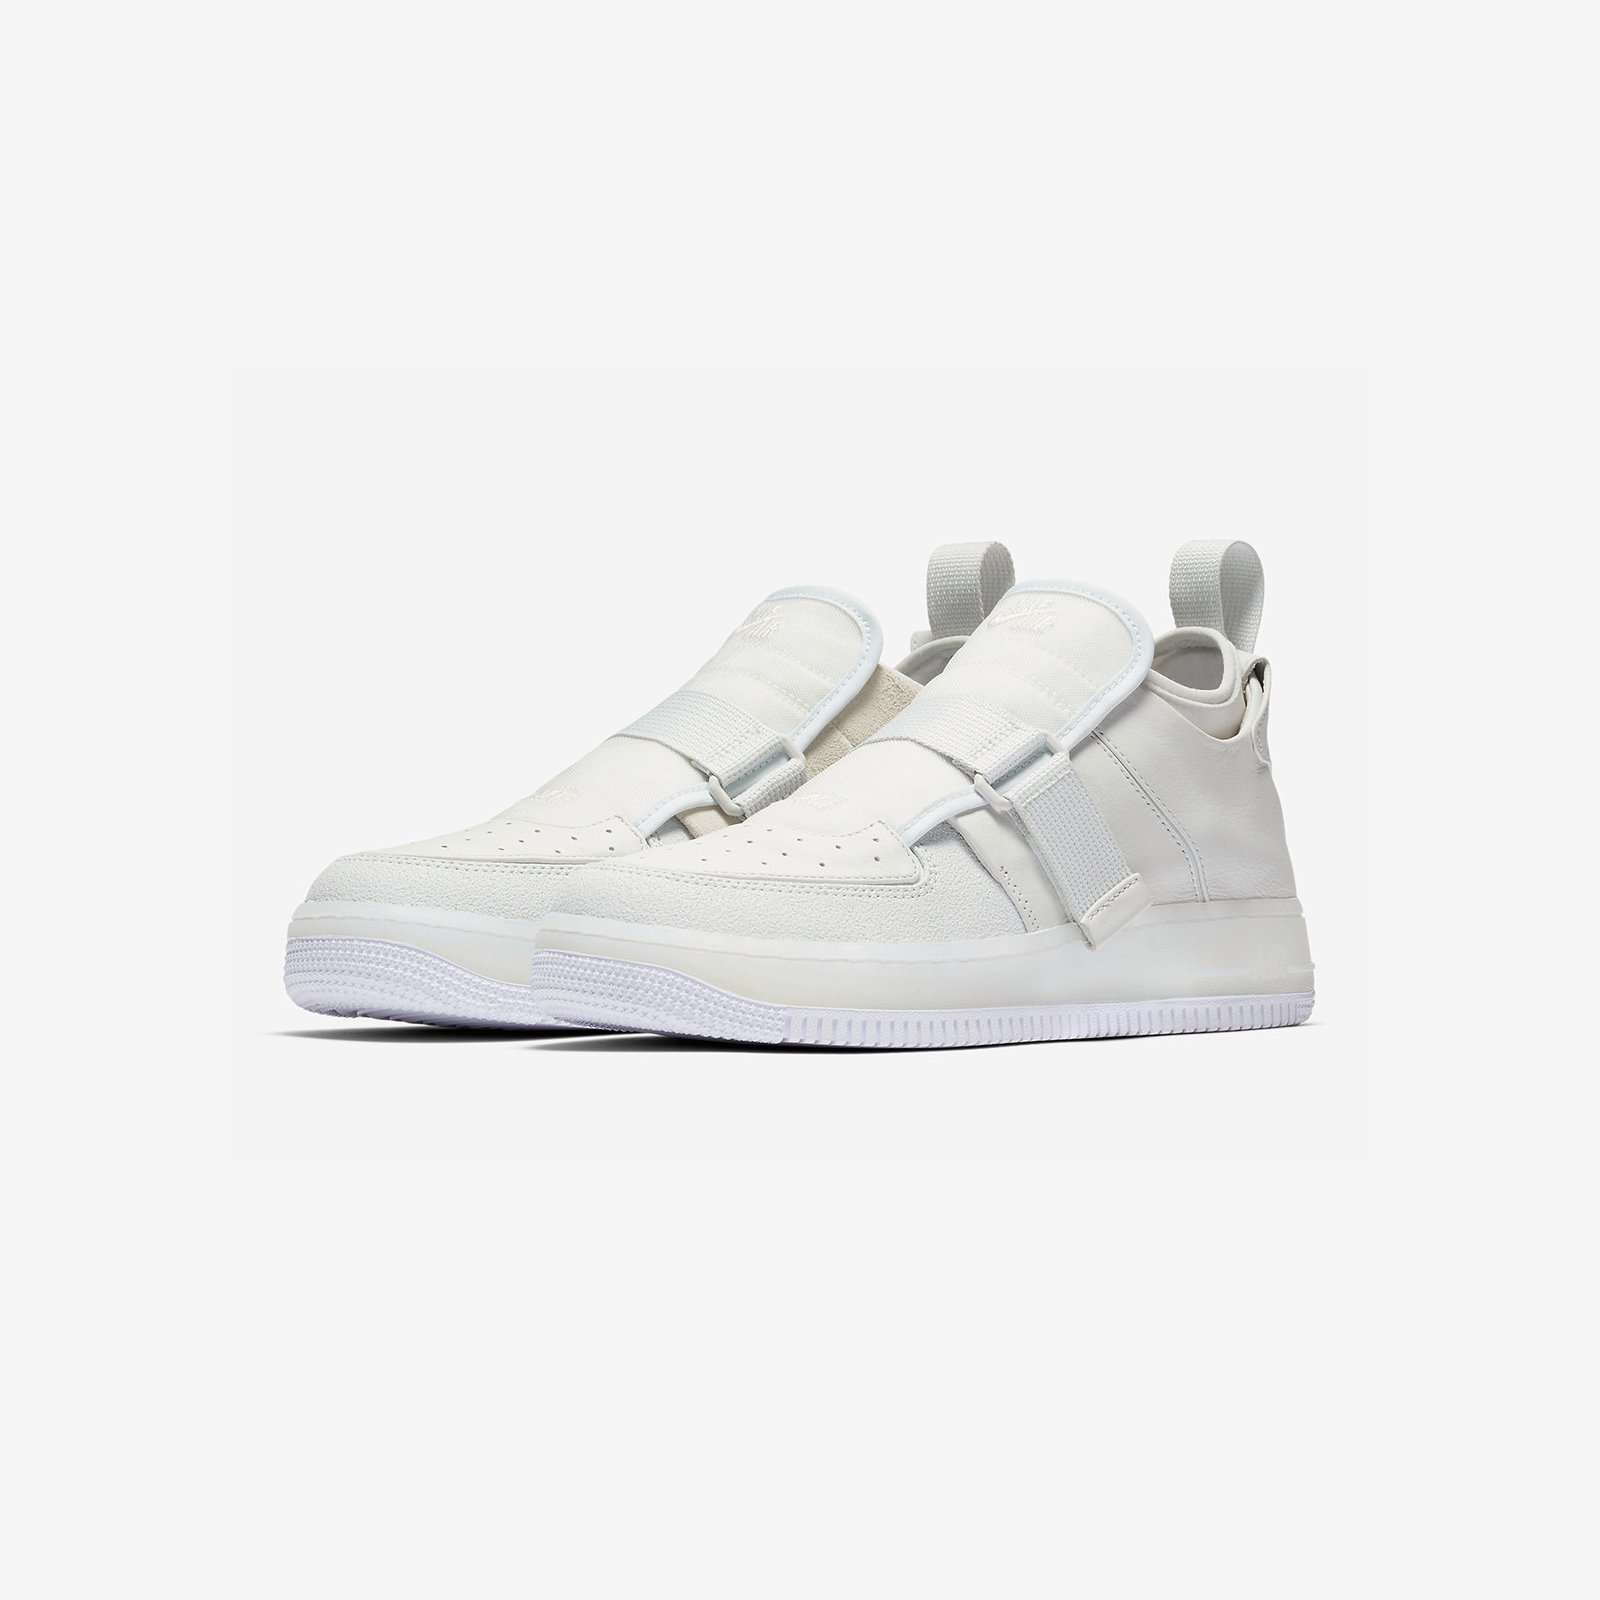 online retailer 49399 422a8 Nike Sportswear Wmns Air Force 1 Explorer XX THE 1, REIMAGINED